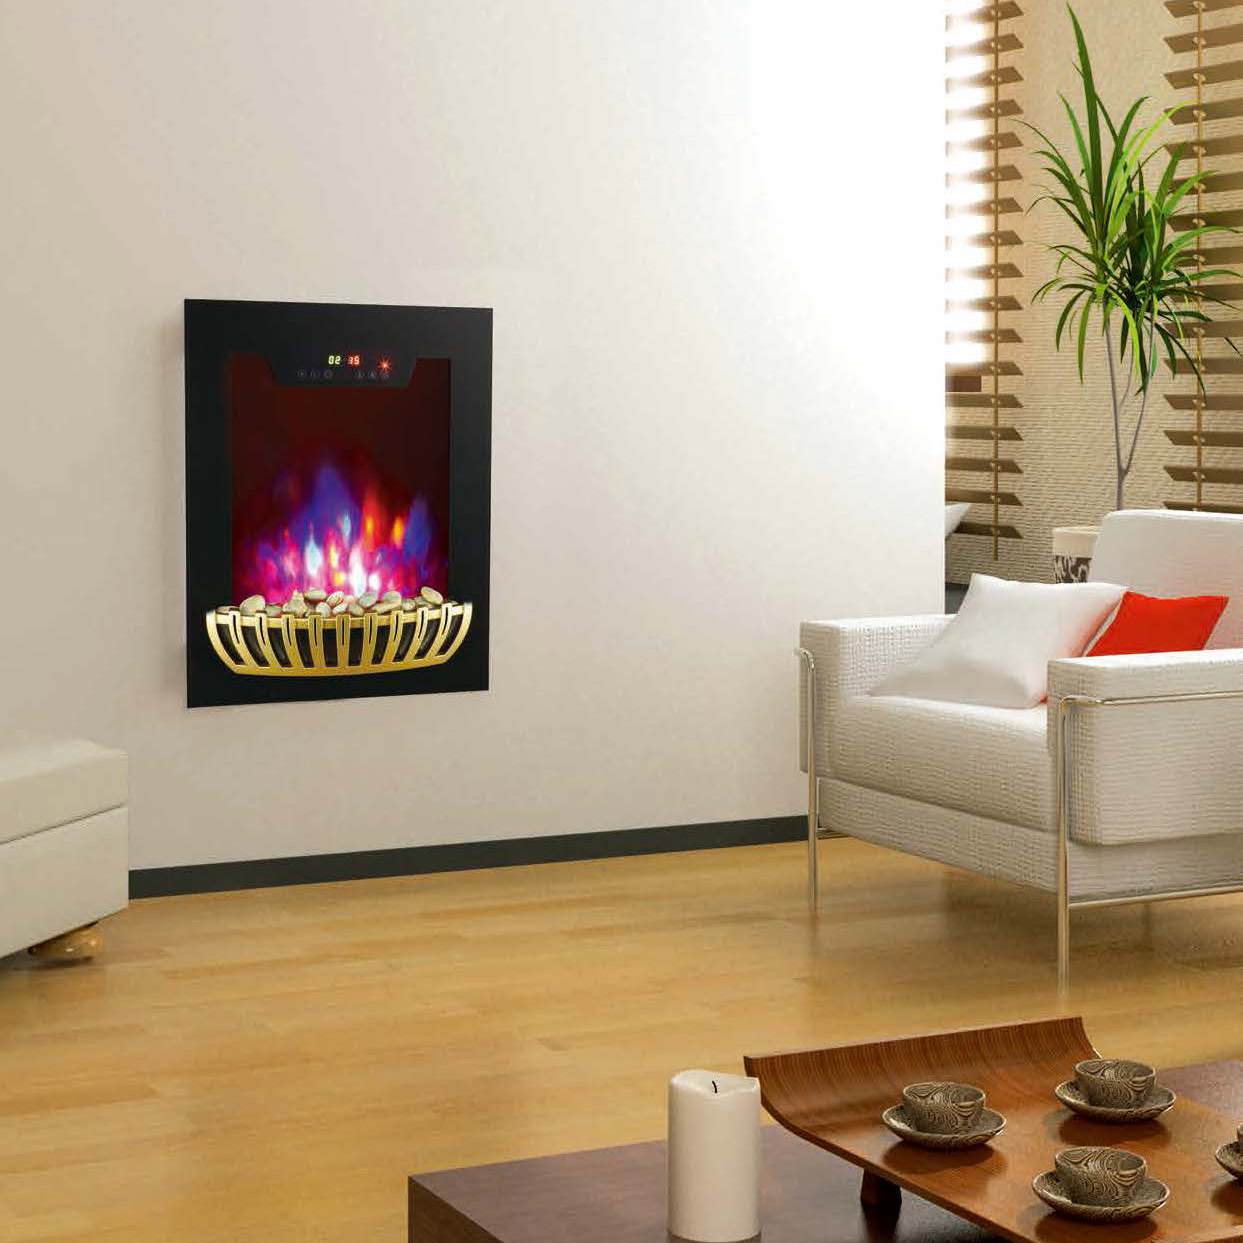 wall mounted fireplace wall hang real flame effect,colorful style,LED lights,Red,Orange,Blue,EF591/E